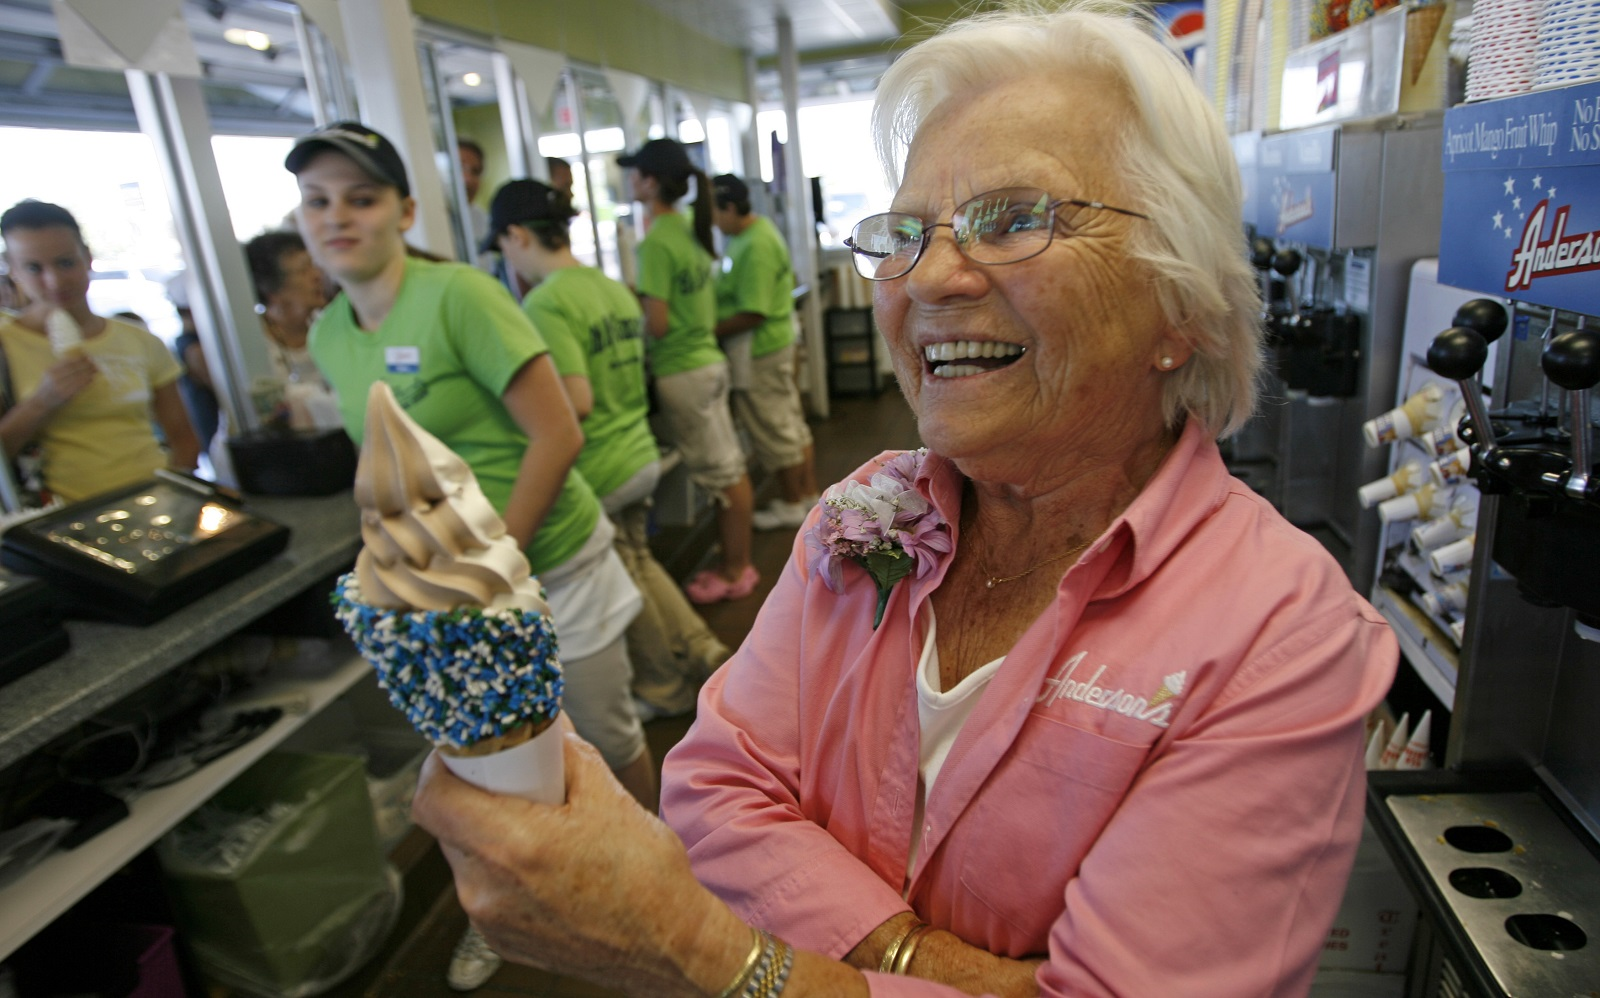 Greta Anderson, who founded the famed custard and roast beef chain that bears her name, takes time from celebrating her 90th birthday in 2008. On Thursday, Anderson will go on Facebook live to celebrate her 99th birthday. (Derek Gee/Buffalo News file photo)